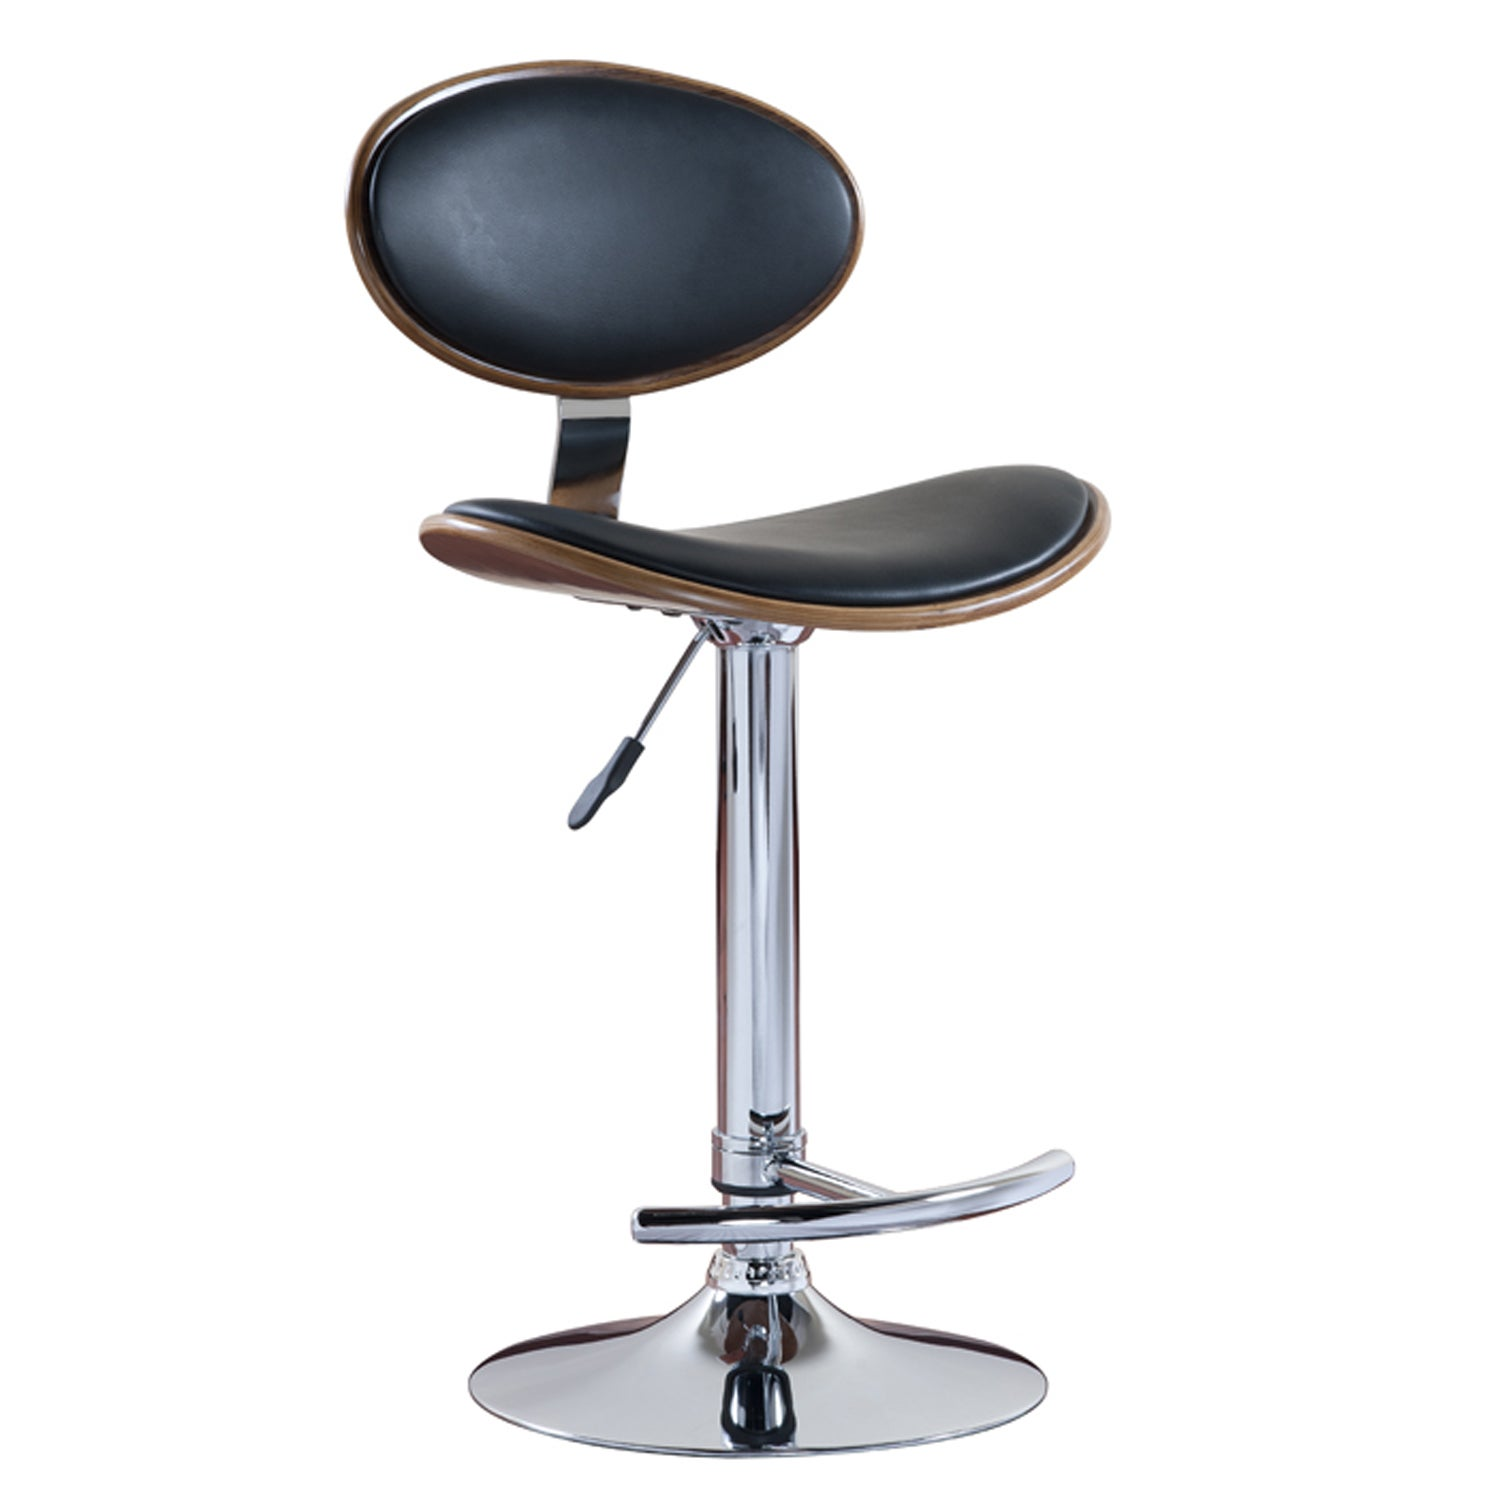 Favorite Finds Chrome/Walnut/Black Oval Adjustable Swivel Stool (Set of 2)